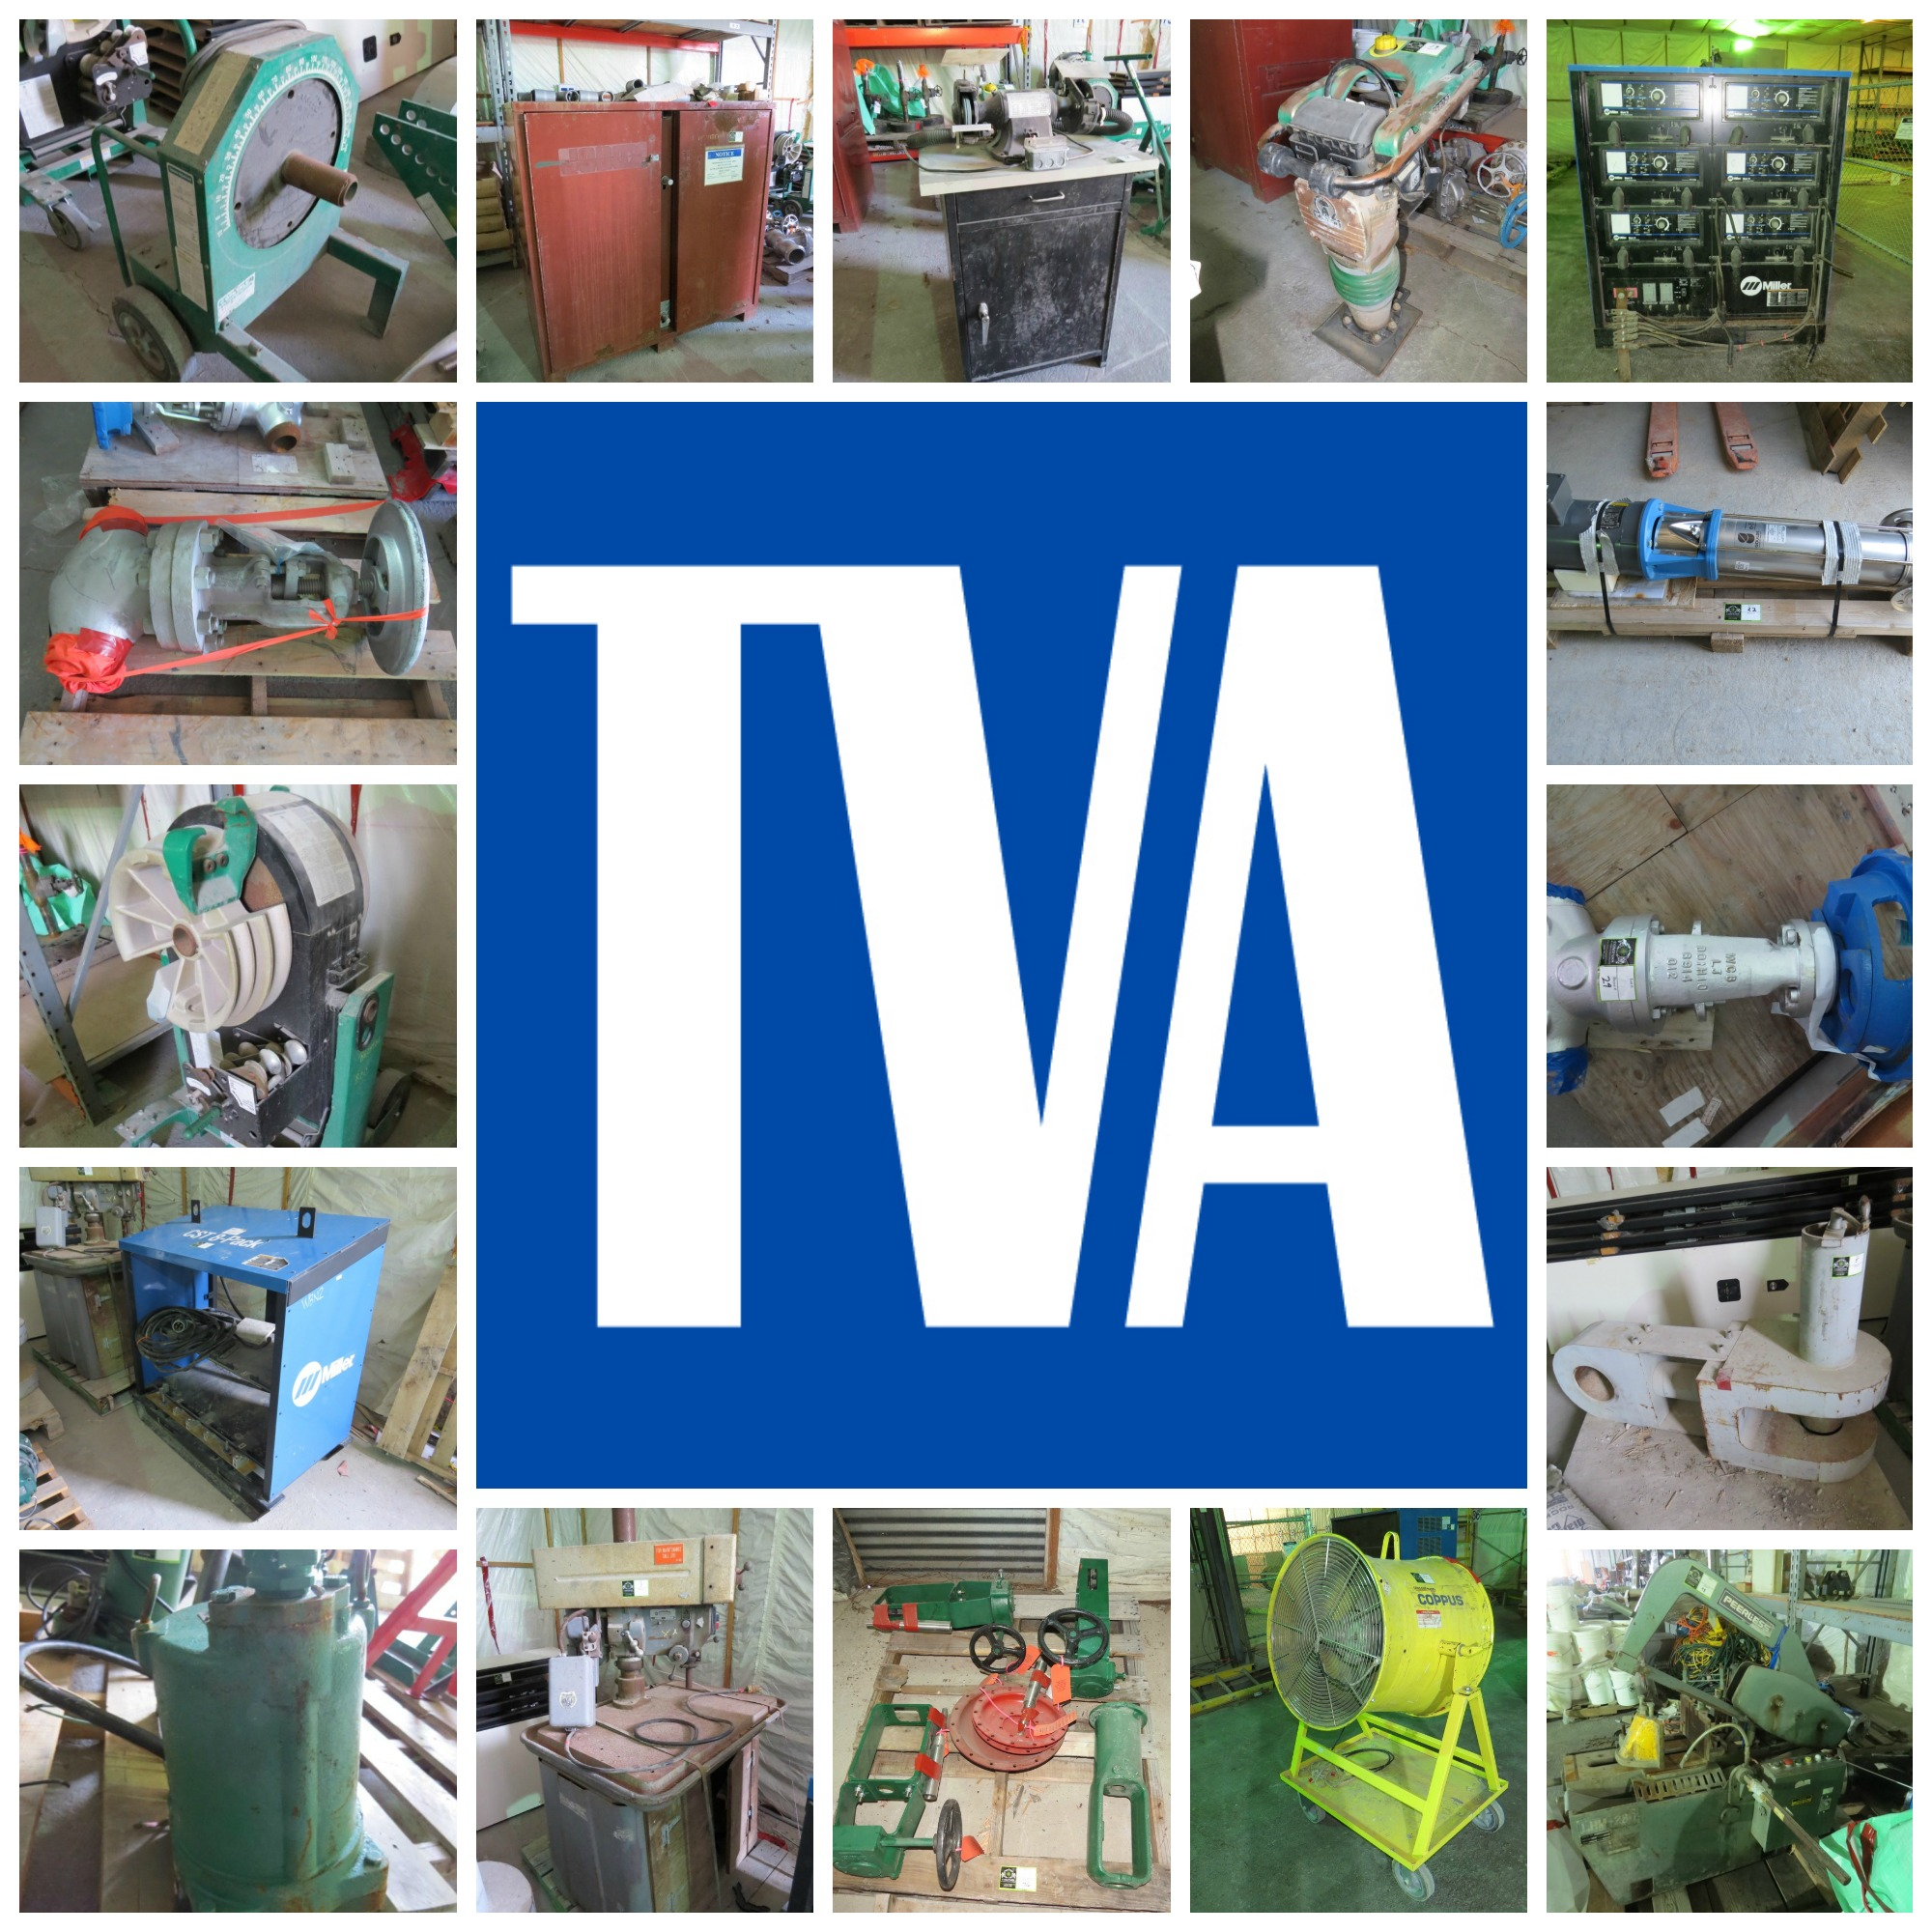 TVA AUCTION TRIPLE HEADER 3 DAYS - 3 AUCTIONS |6-17-15 | SoldonCompass.com